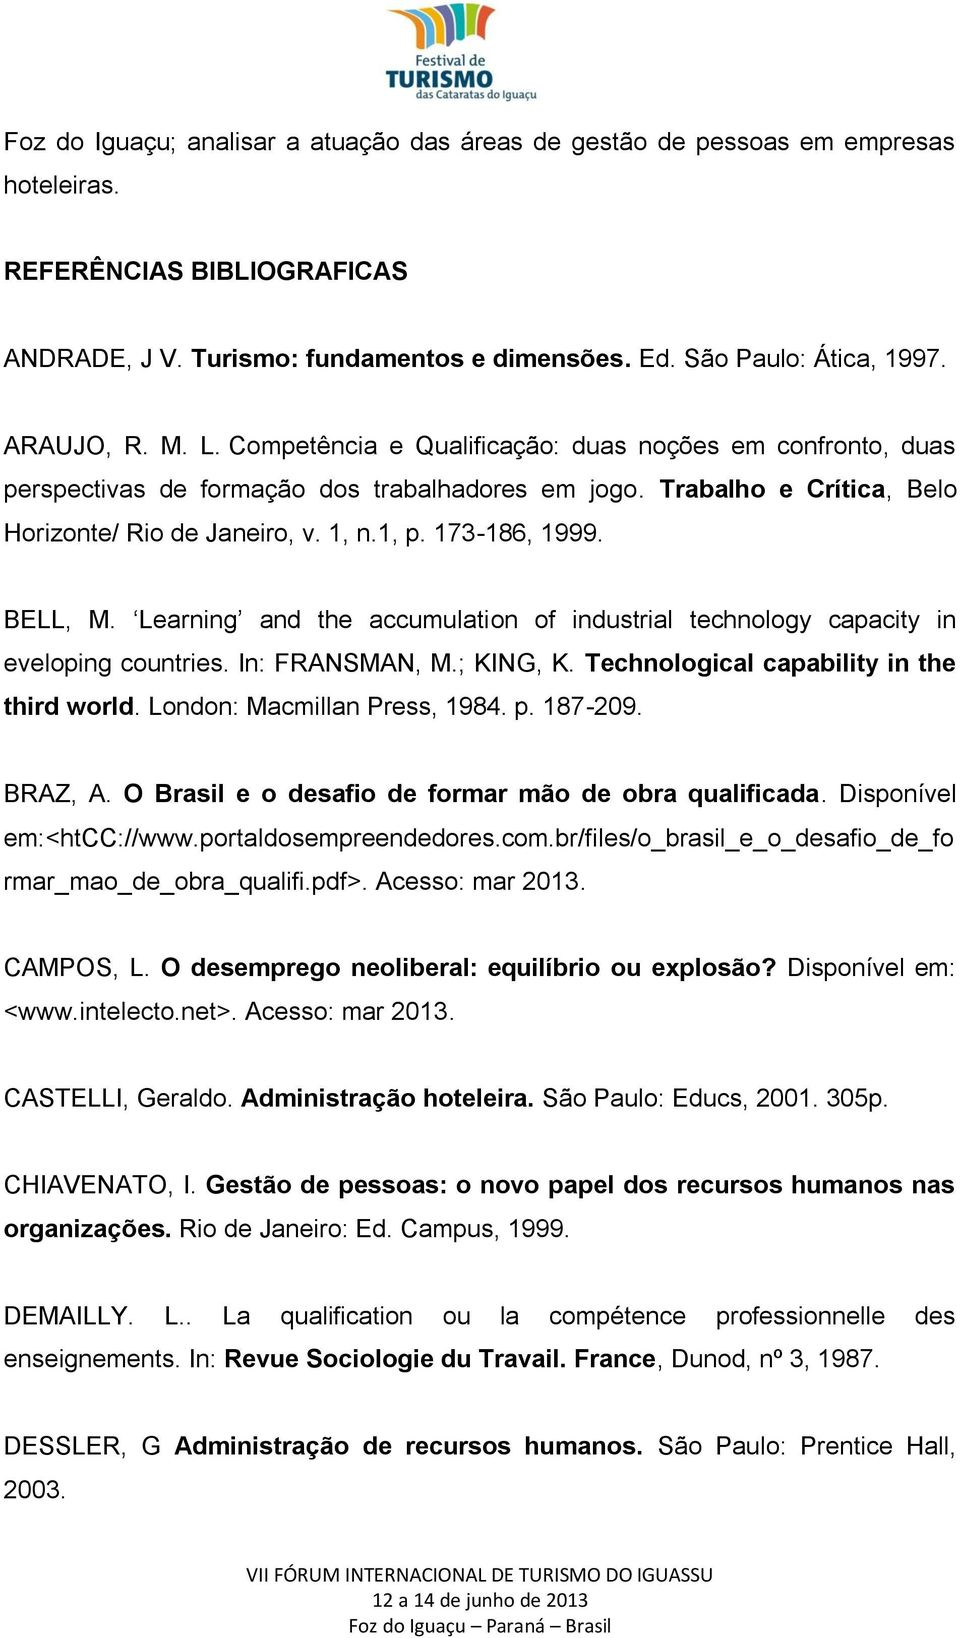 173-186, 1999. BELL, M. Learning and the accumulation of industrial technology capacity in eveloping countries. In: FRANSMAN, M.; KING, K. Technological capability in the third world.